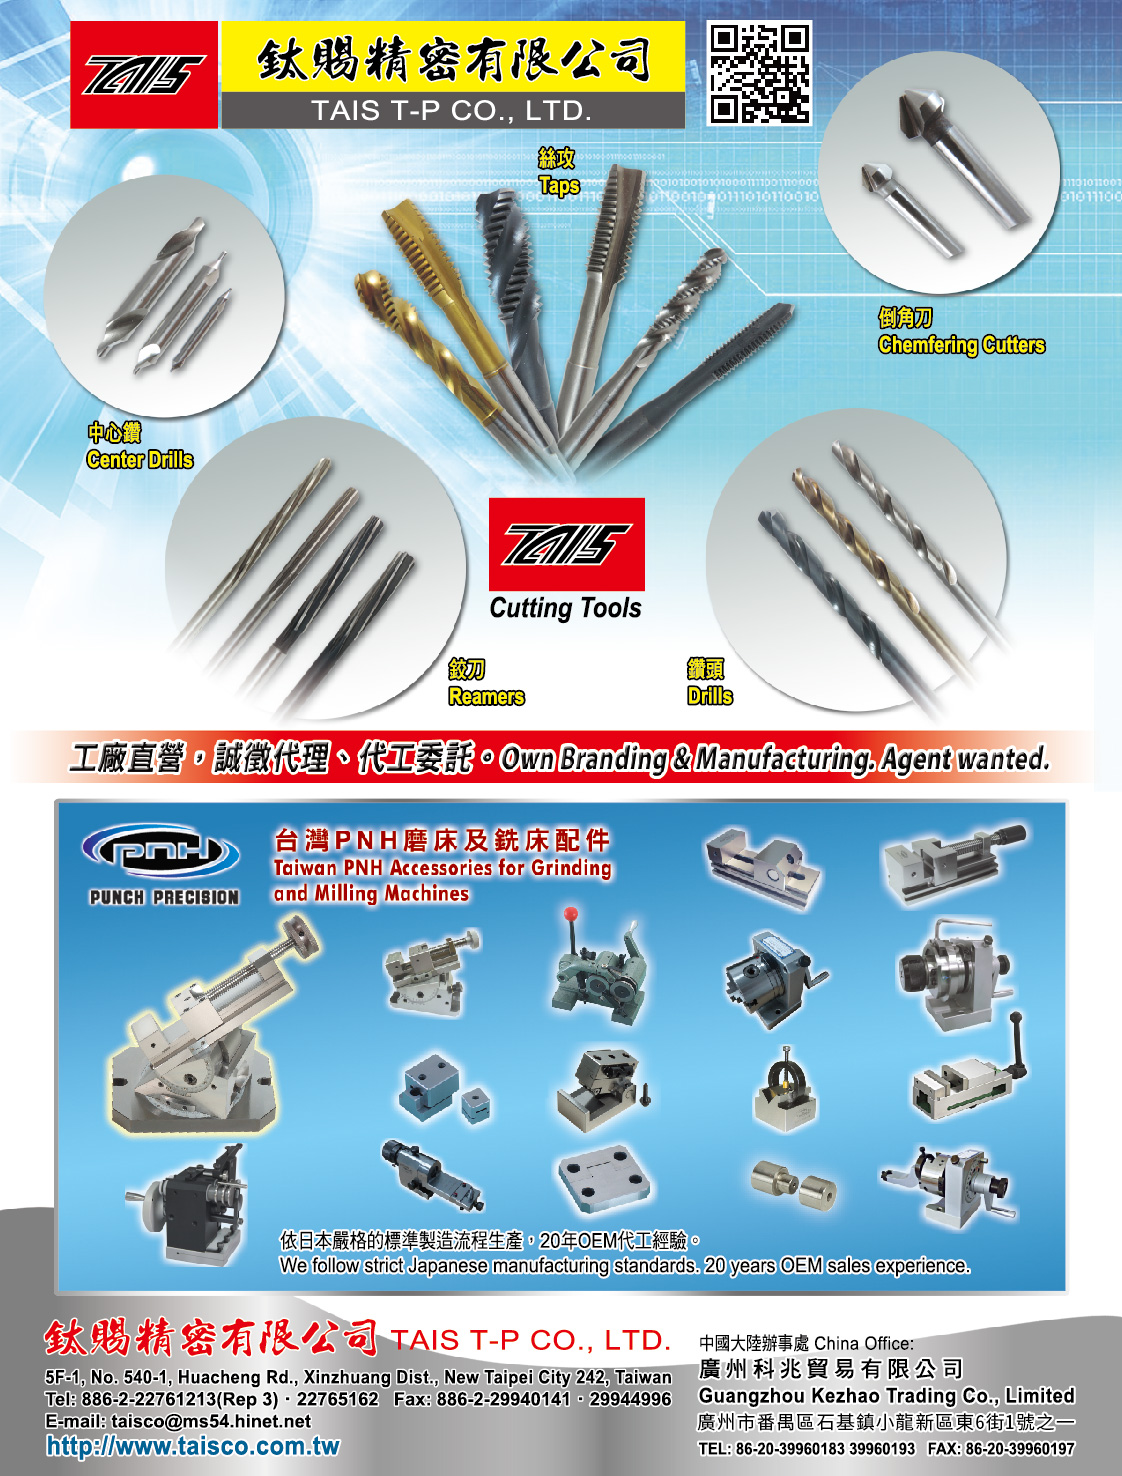 TAIS T-P CO., LTD.